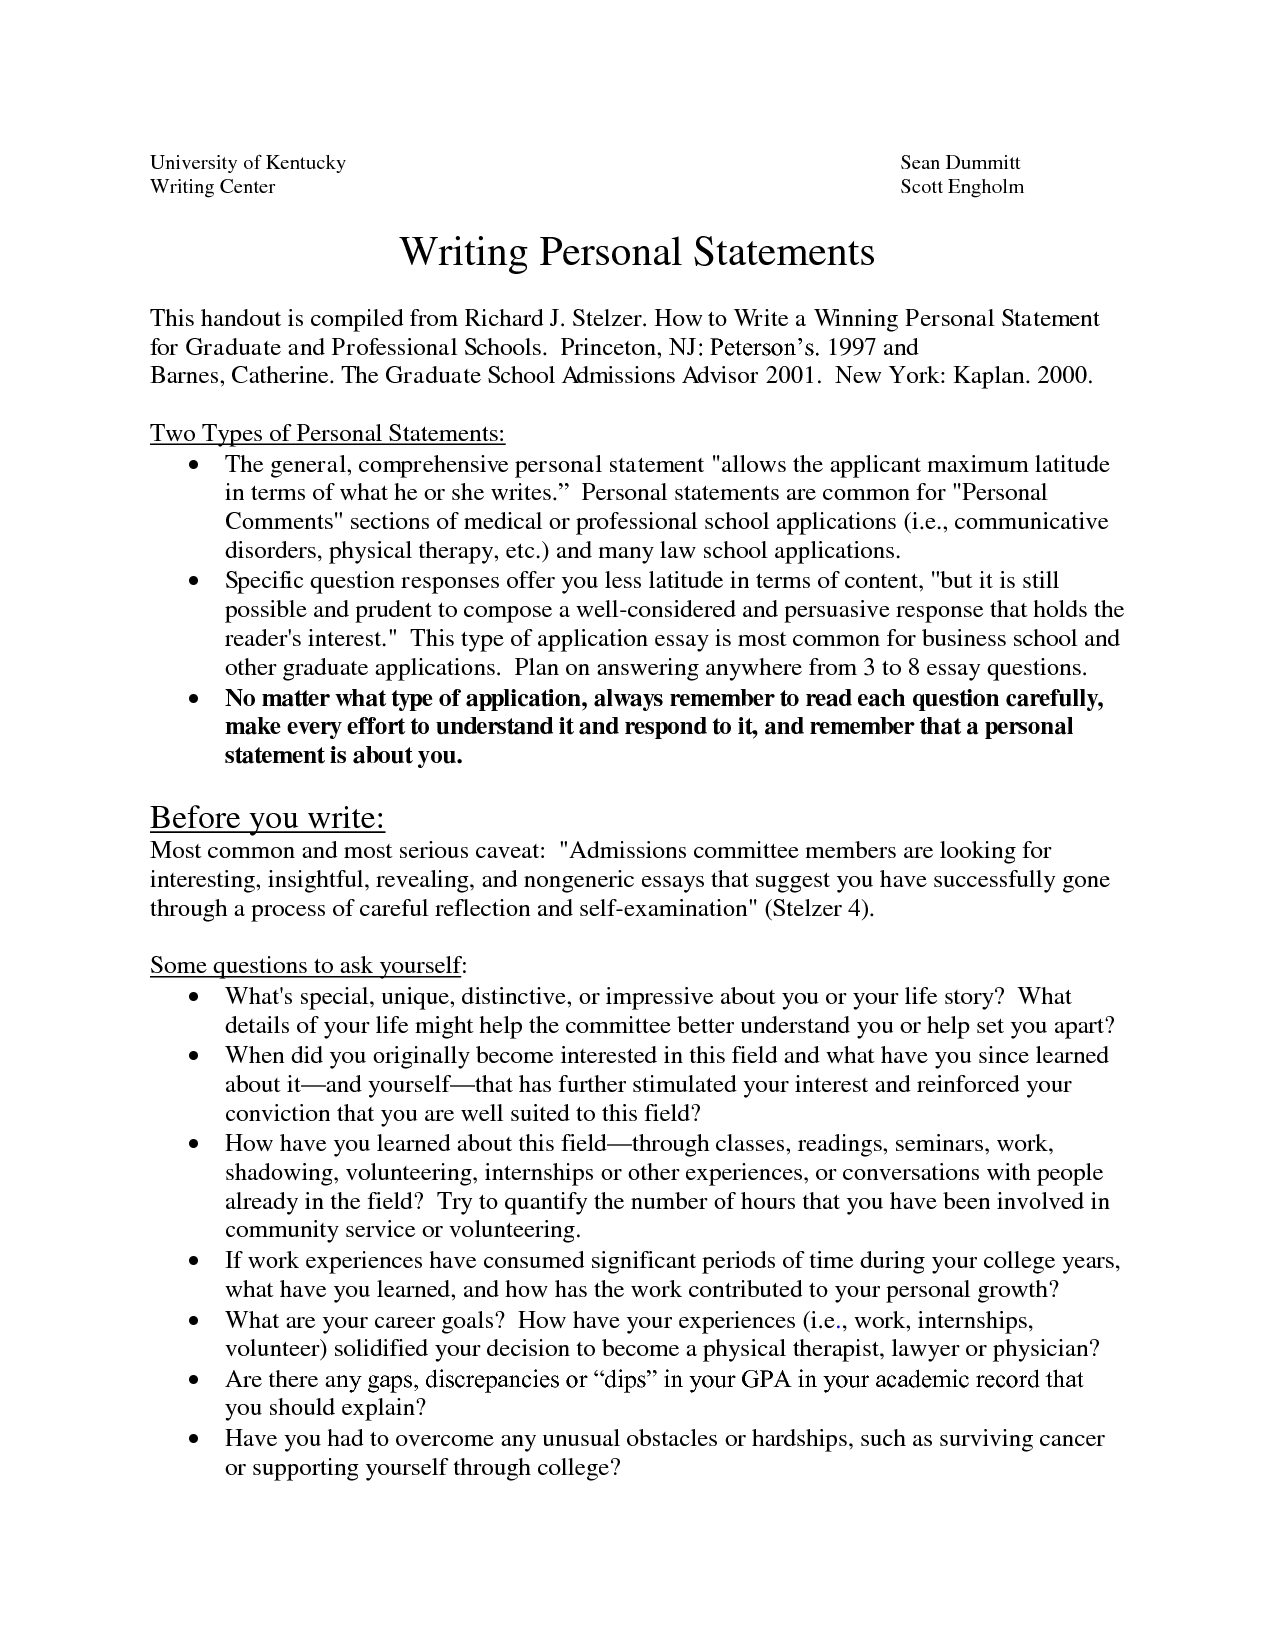 sample personal statements graduate school how to write a personal statement for medical school - Sample Resume Pa School